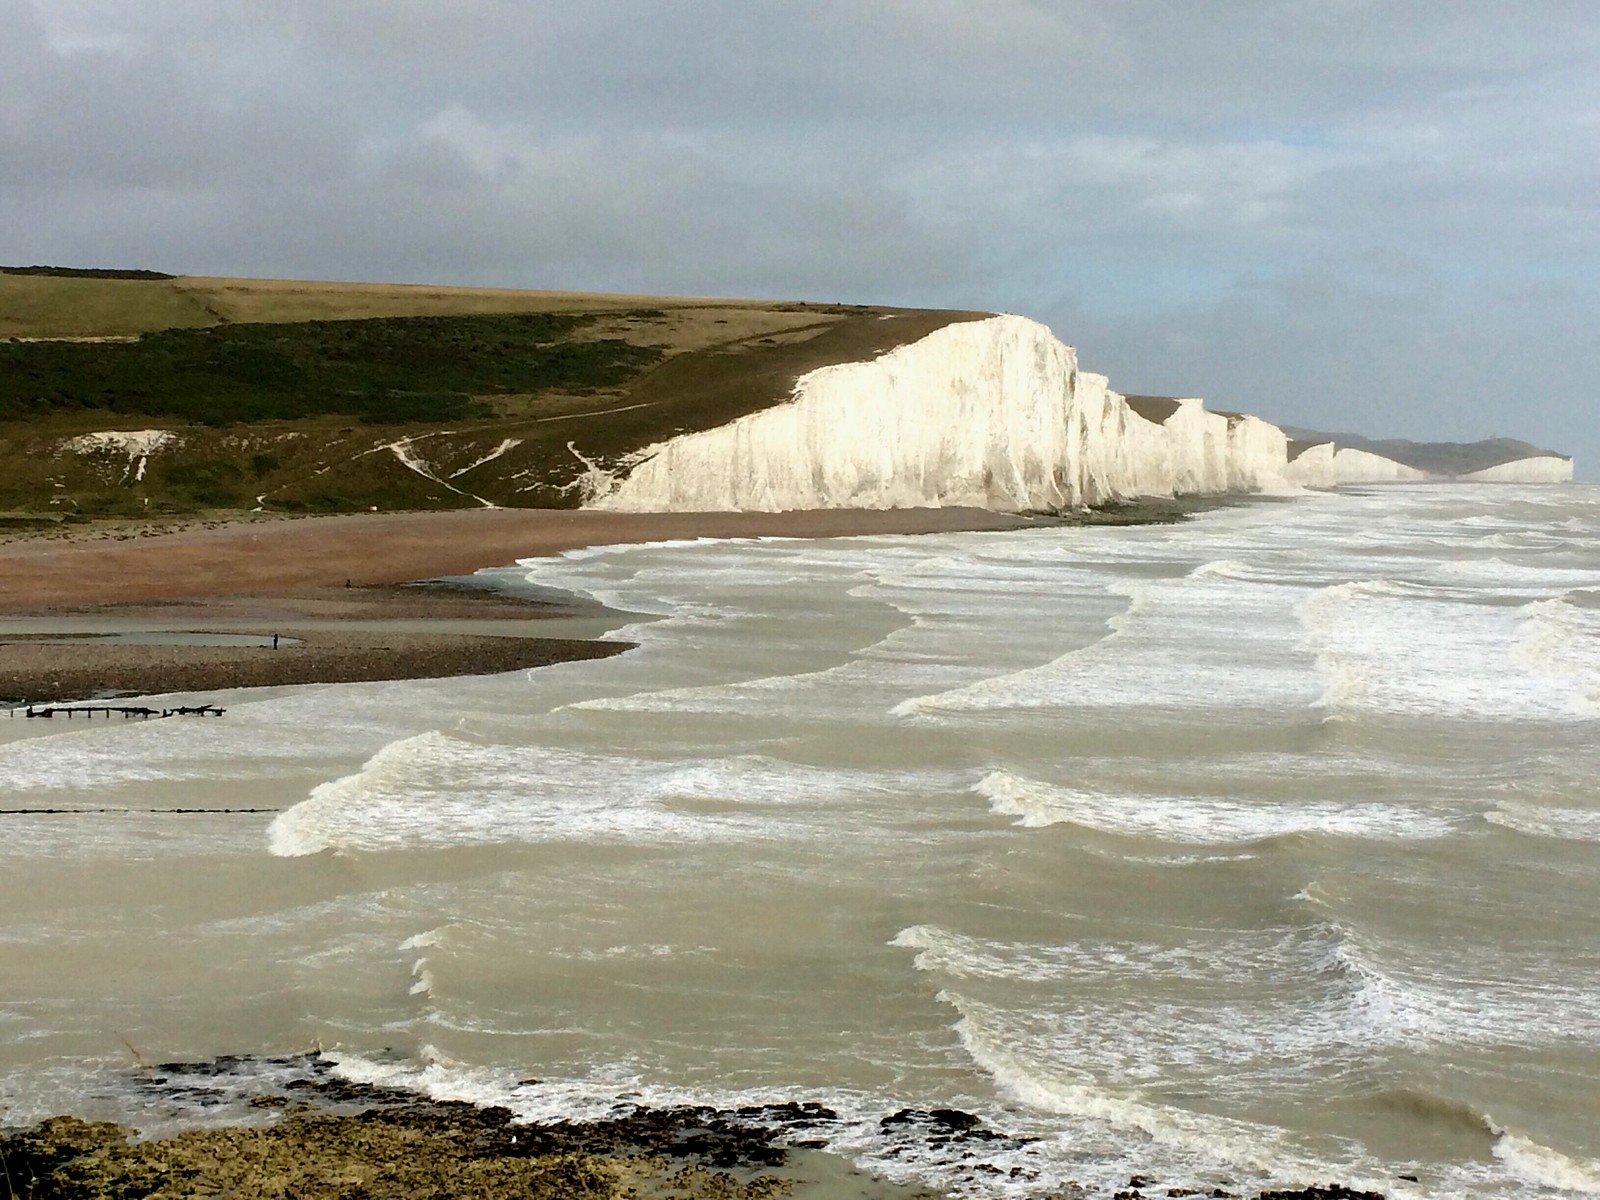 August 20, 2016: Glynde to Seaford Seven Sisters